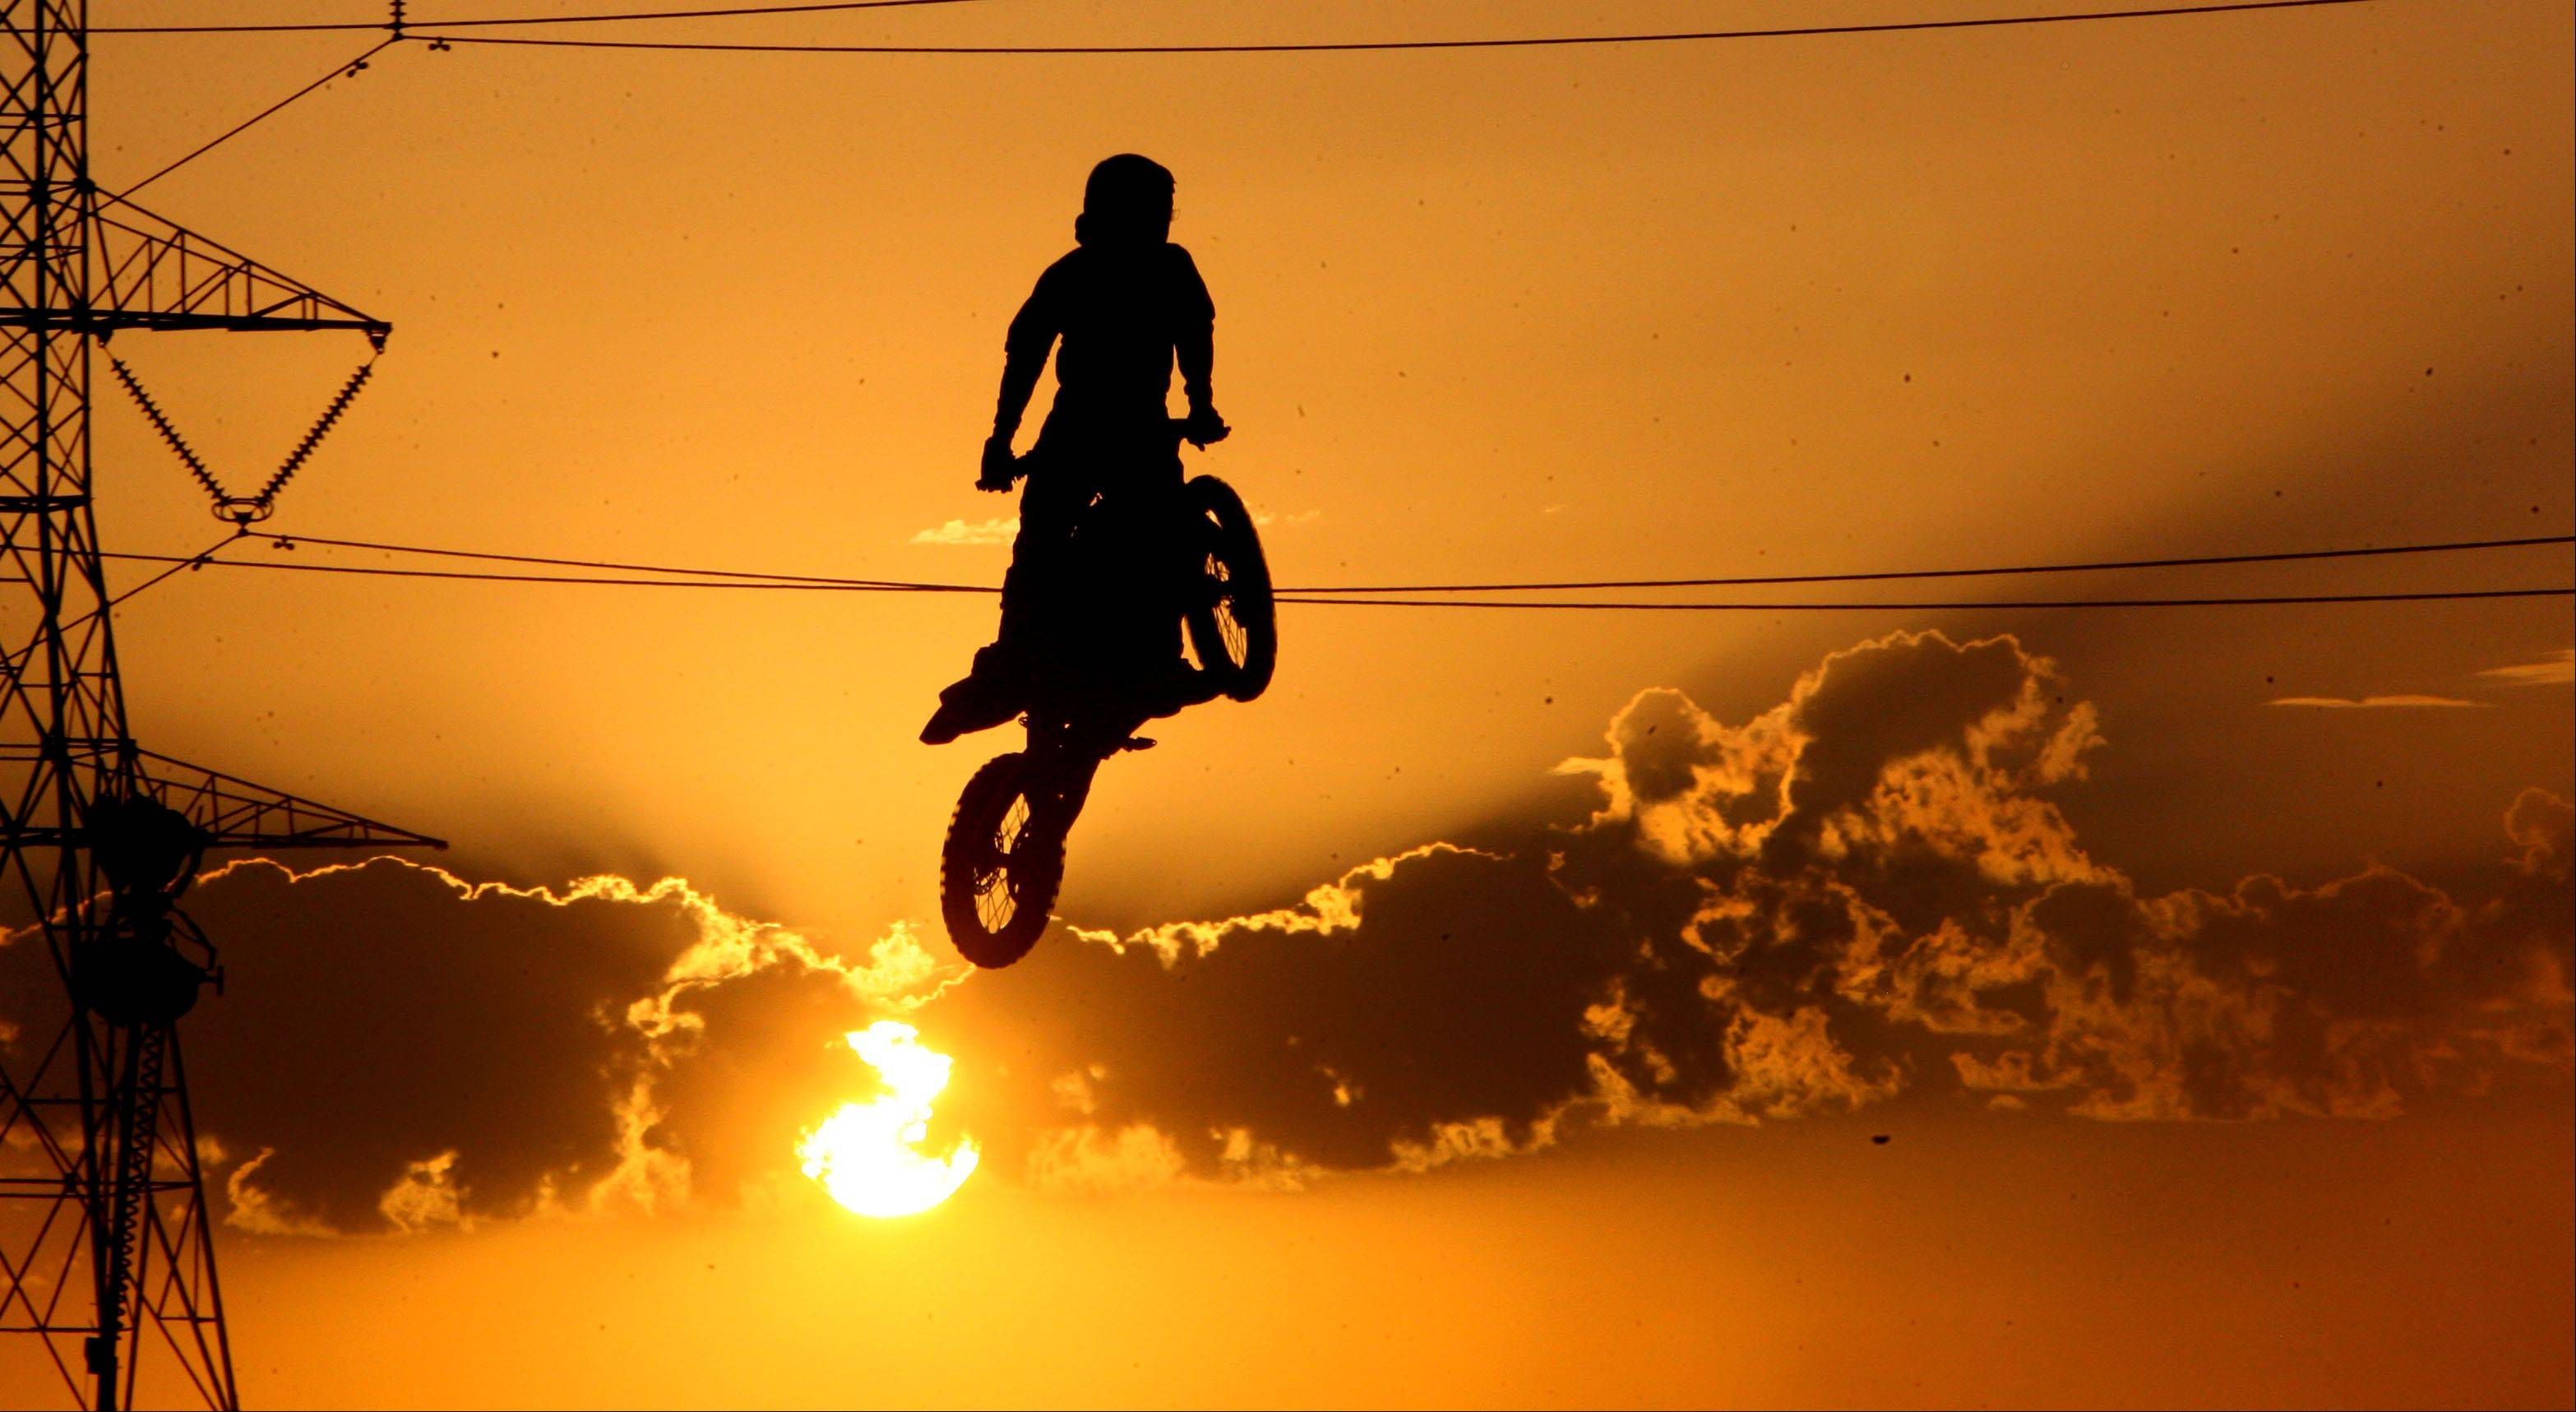 A motocross rider is silhouetted against the setting sun during the first day of the Lake County Fair Wednesday night in Grayslake.